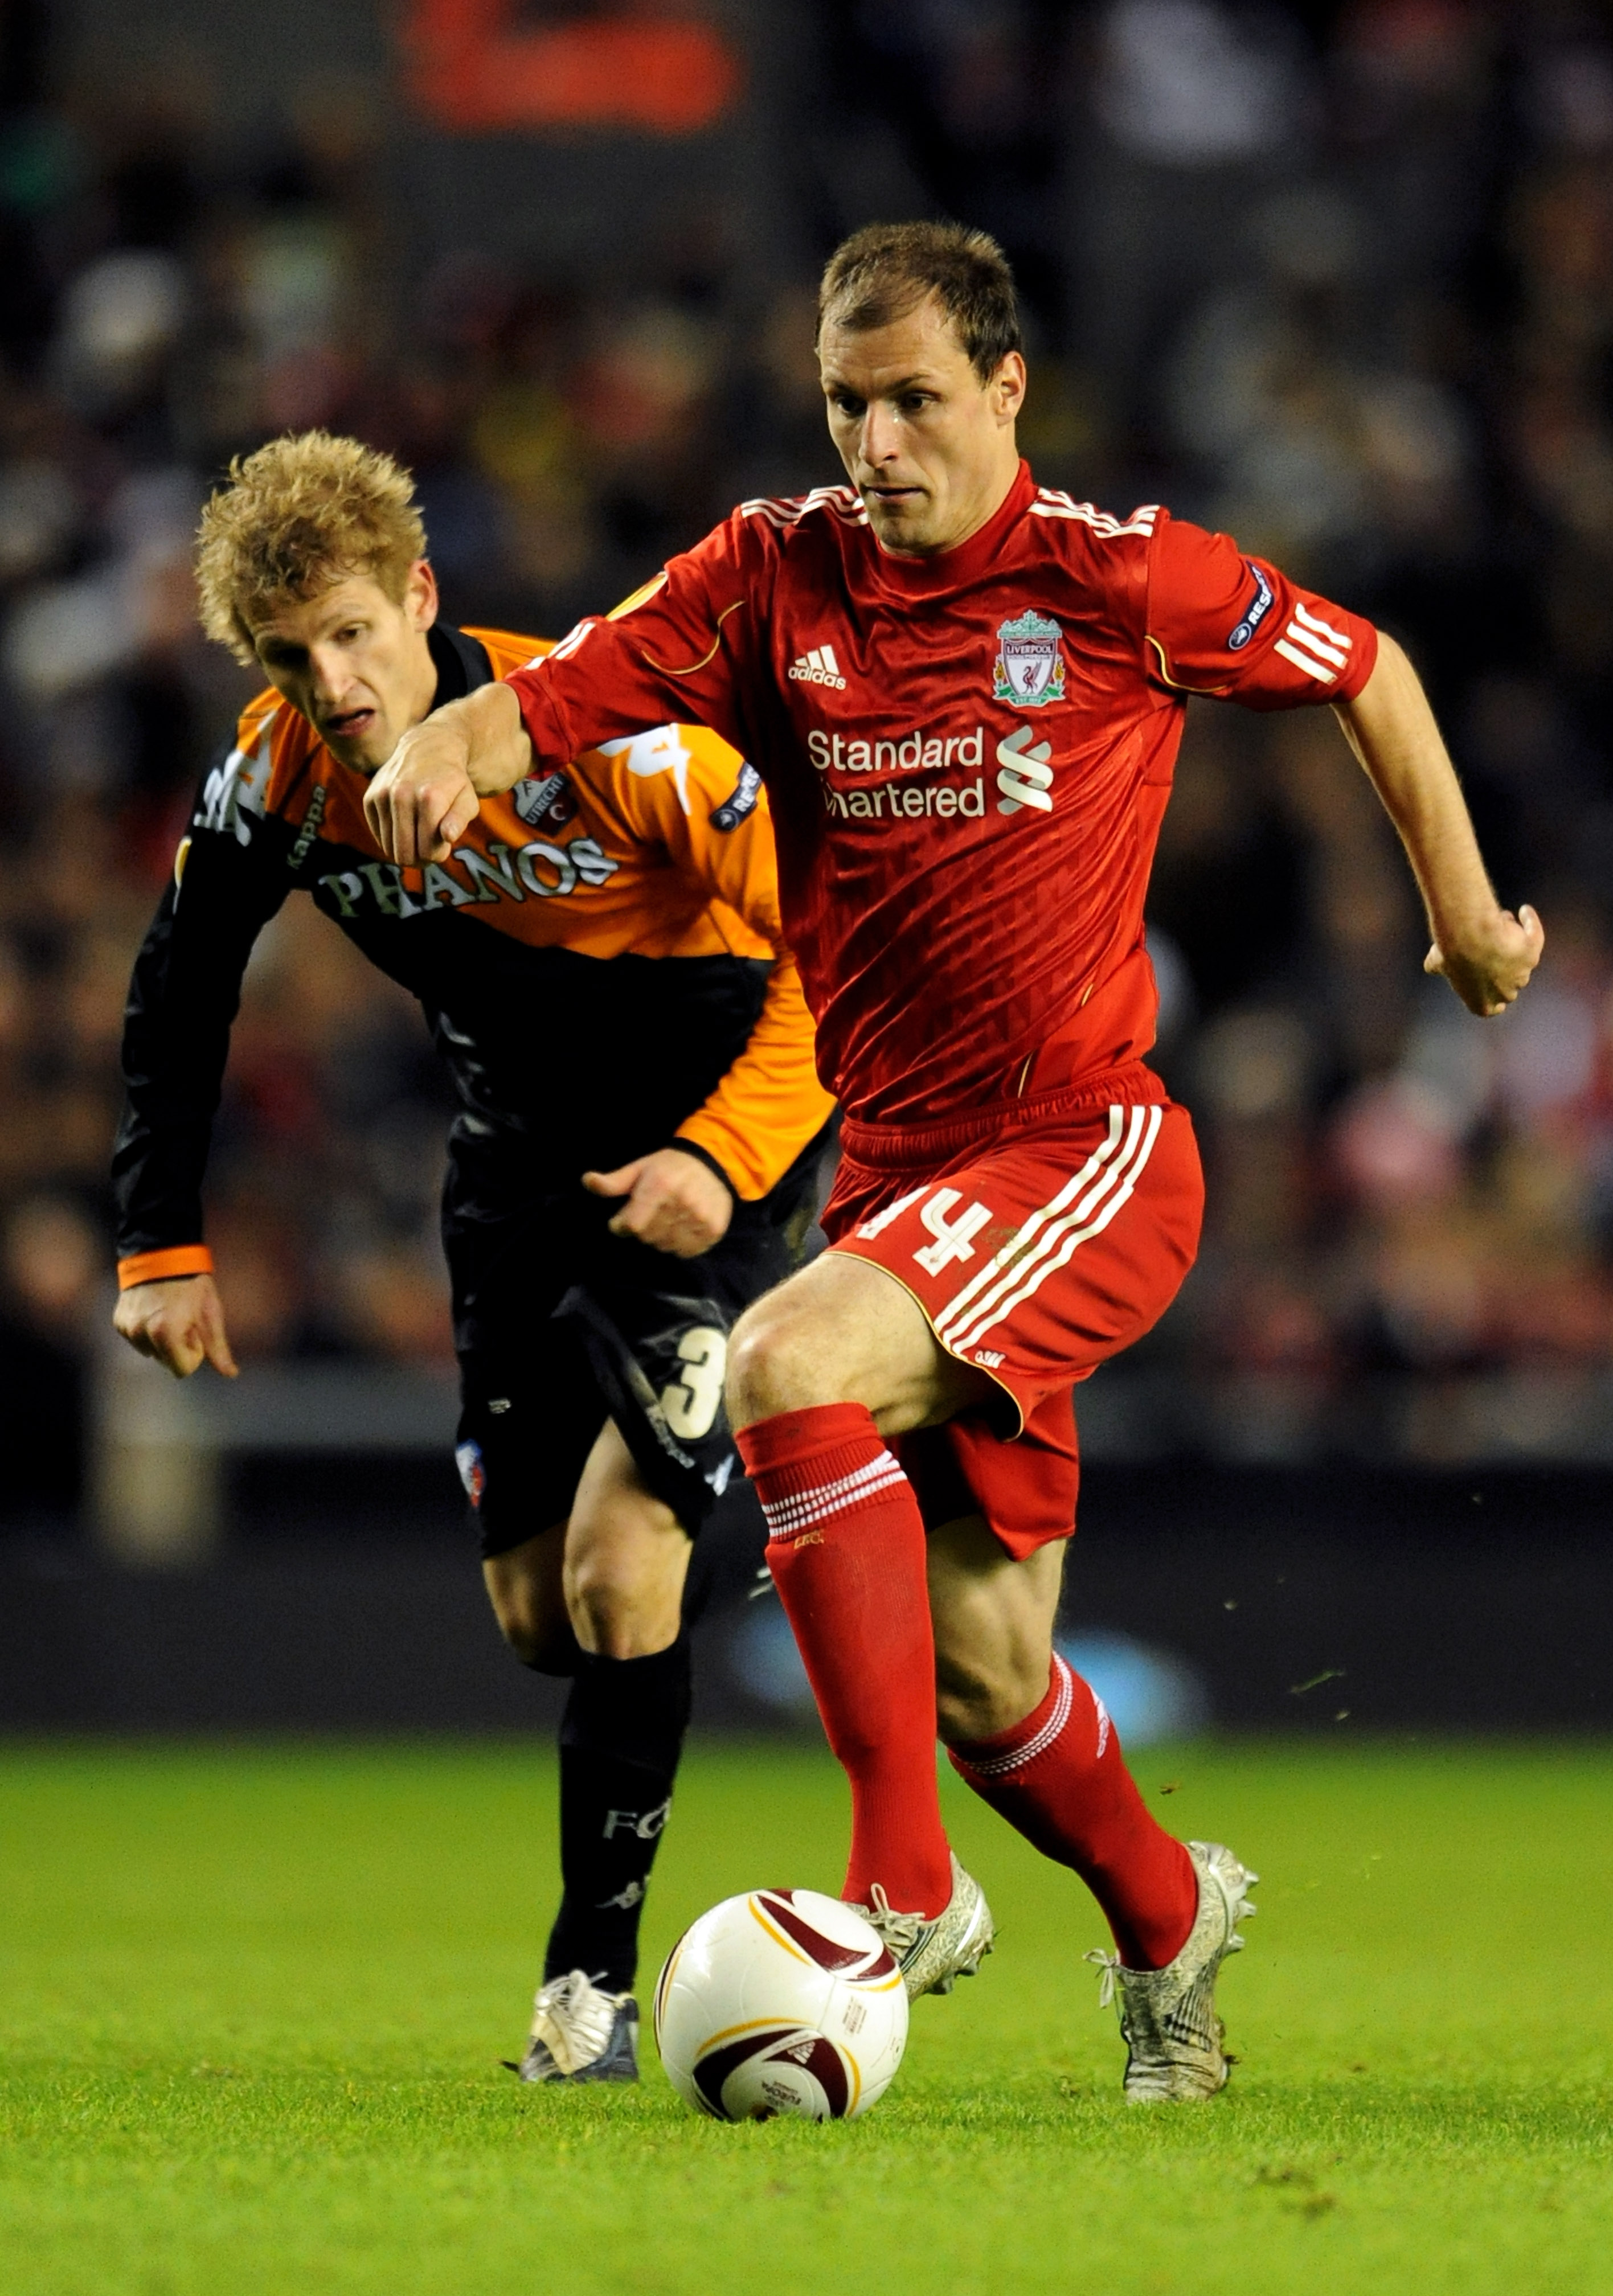 LIVERPOOL, ENGLAND - DECEMBER 15:  Milan Jovanovic of Liverpool is pursued by Mihai Nesu of FC Utrecht during the UEFA Europa League Group K match between Liverpool and FC Utrecht at Anfield on December 15, 2010 in Liverpool, England.  (Photo by Clint Hug